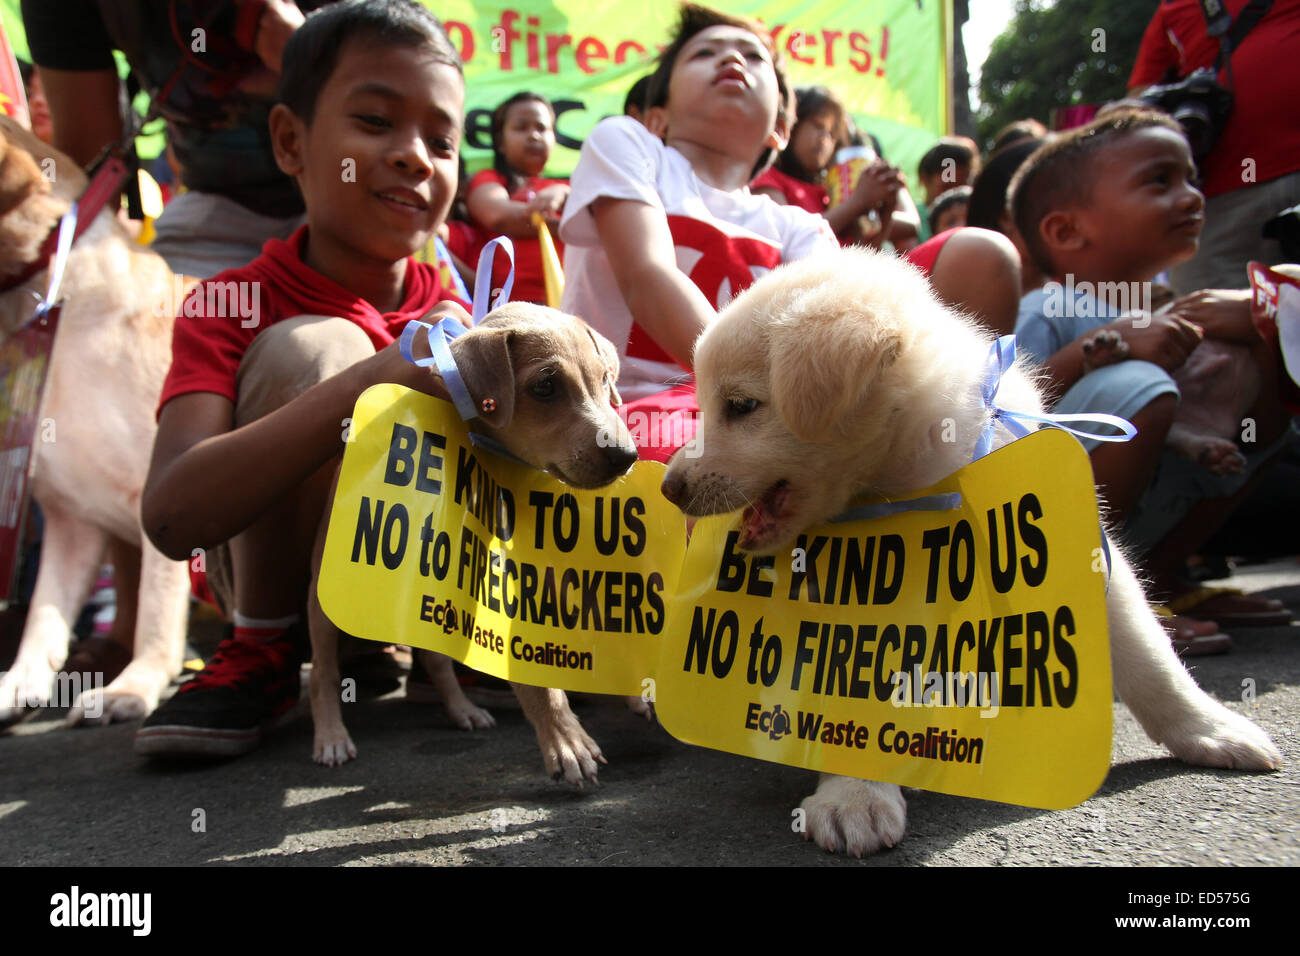 Manila, Philippines. 28th Dec, 2014. Dog owners bring their dogs to attend an anti-firecracker rally in Manila, - Stock Image